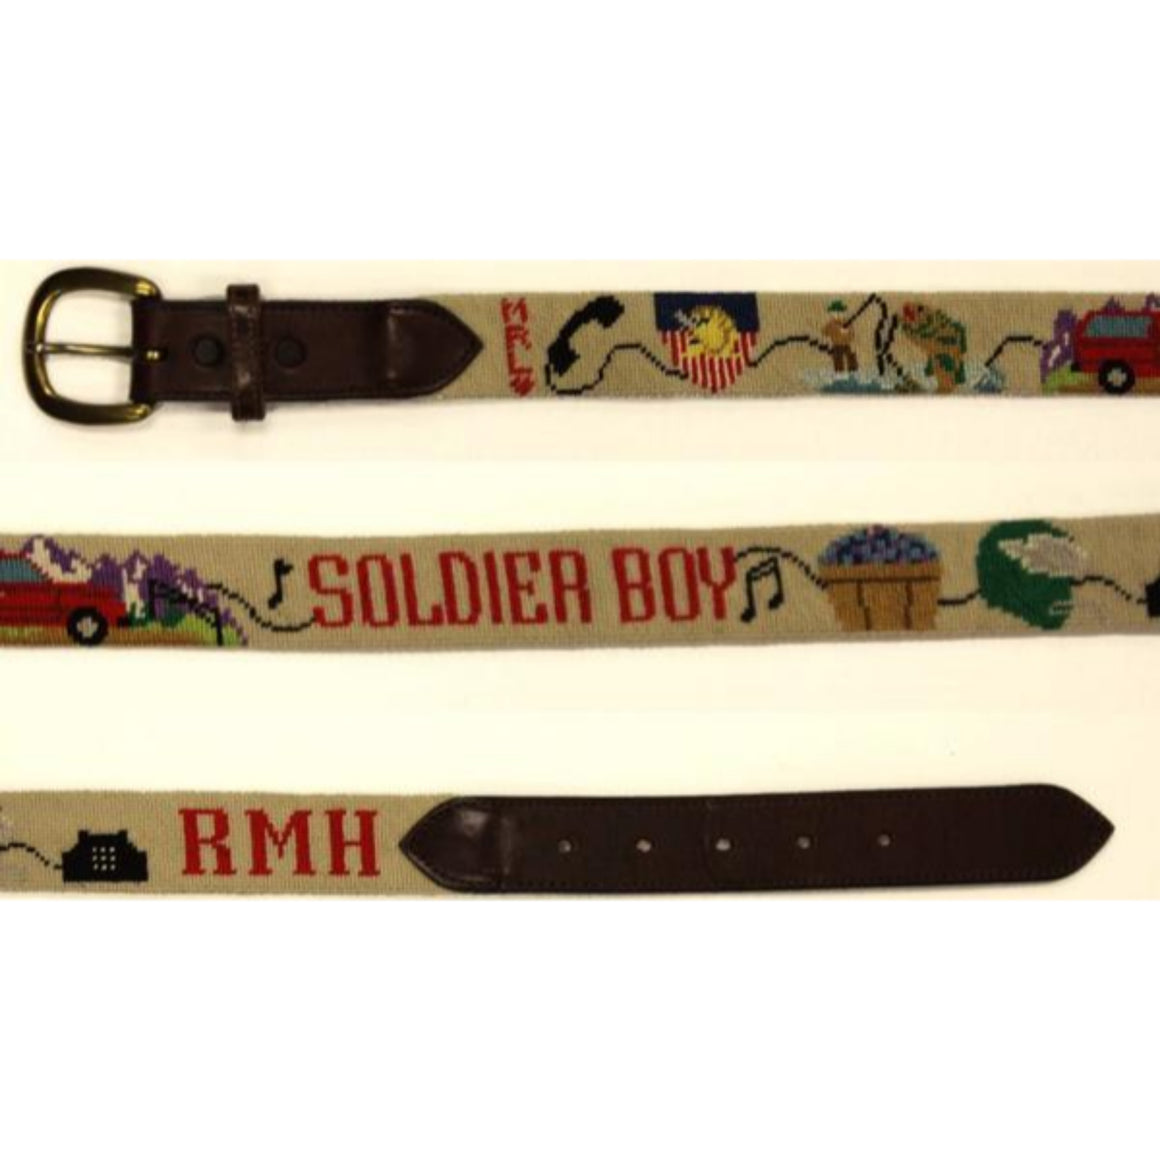 "'Custom Jeep Hand-Needlepoint Belt w/ Brass Buckle' Sz: 35""W"